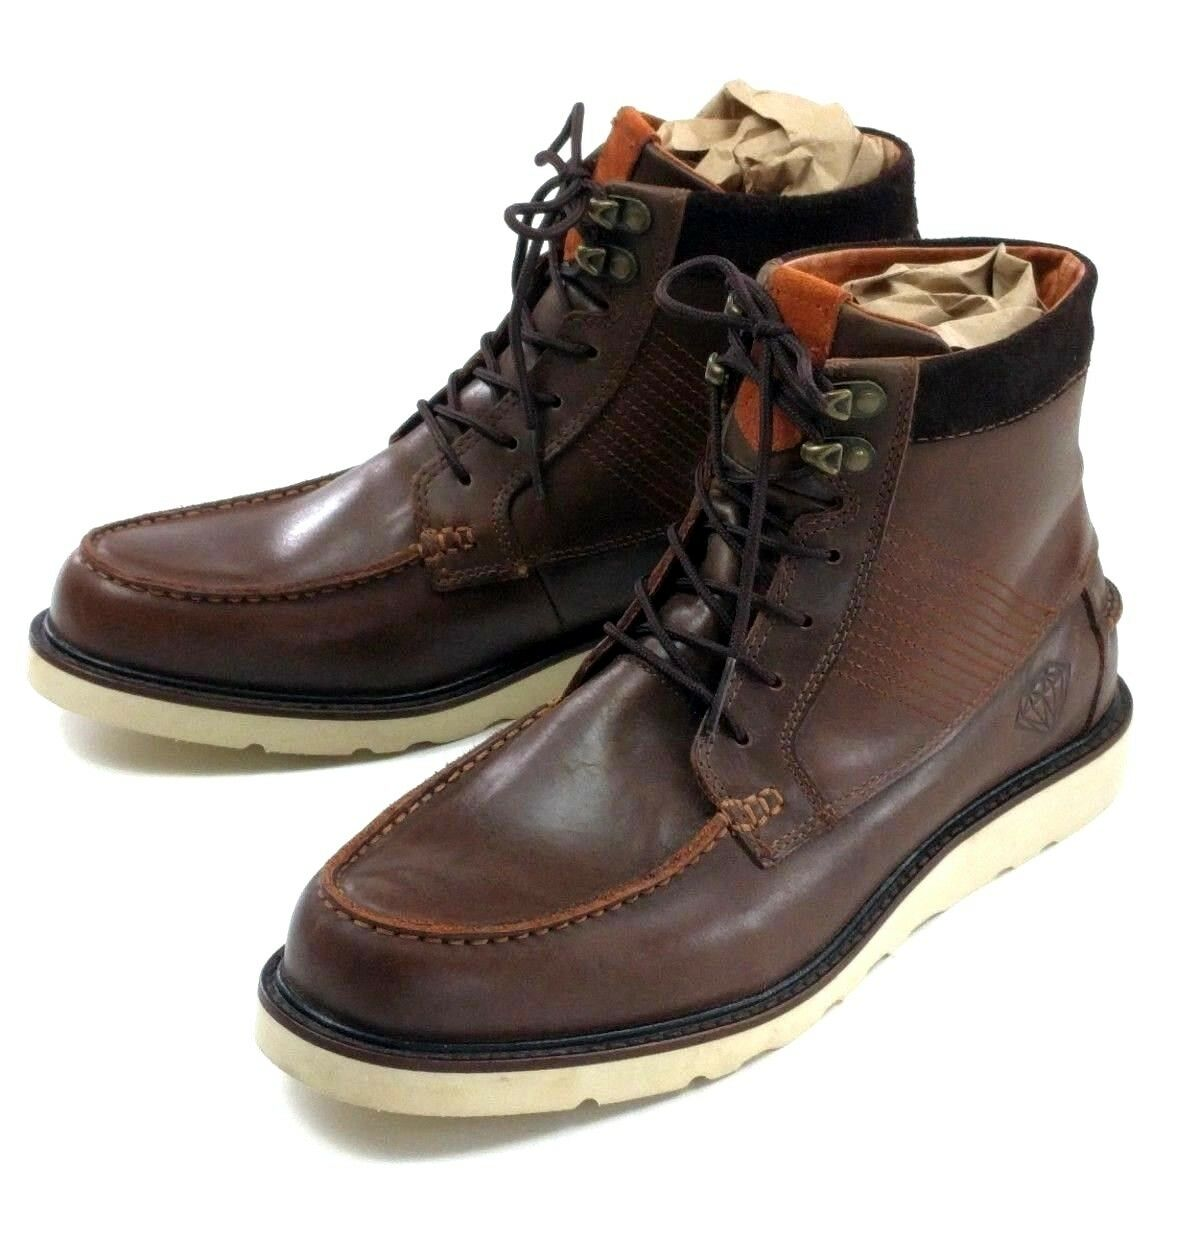 Diamond Supply Co Brown Leather GI Boots Mens Size 9.5 Vibram Soles C13-F106